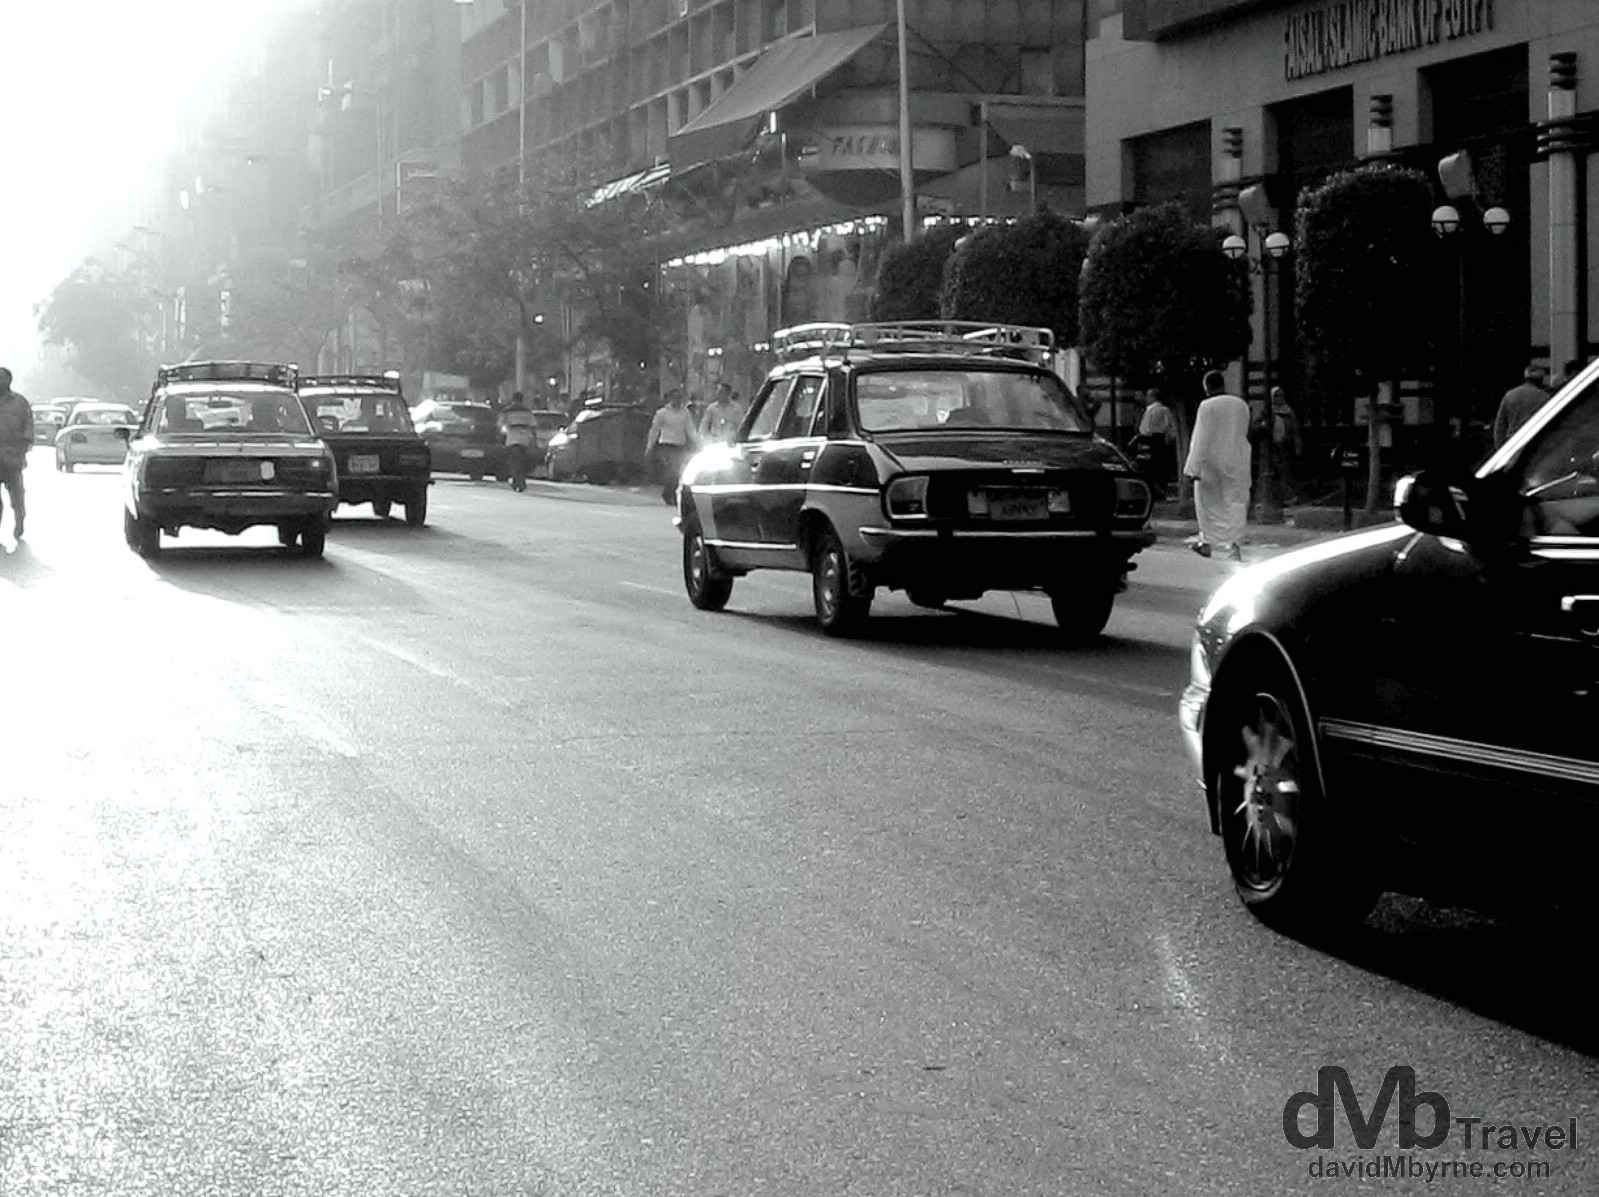 Late afternoon traffic on 26th of July street, Downtown Cairo, Egypt. April 10, 2008.